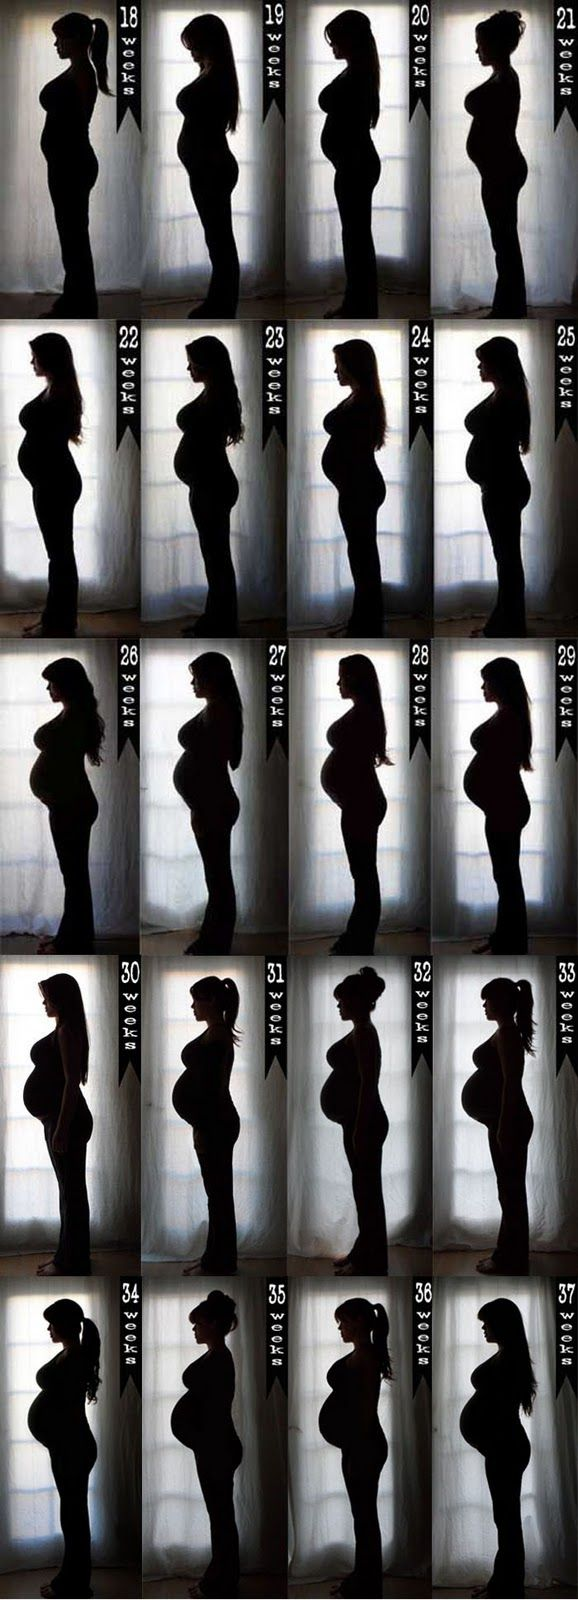 Cute silhouette belly photos, I would bend my elbow...looks like she doesn't have arms